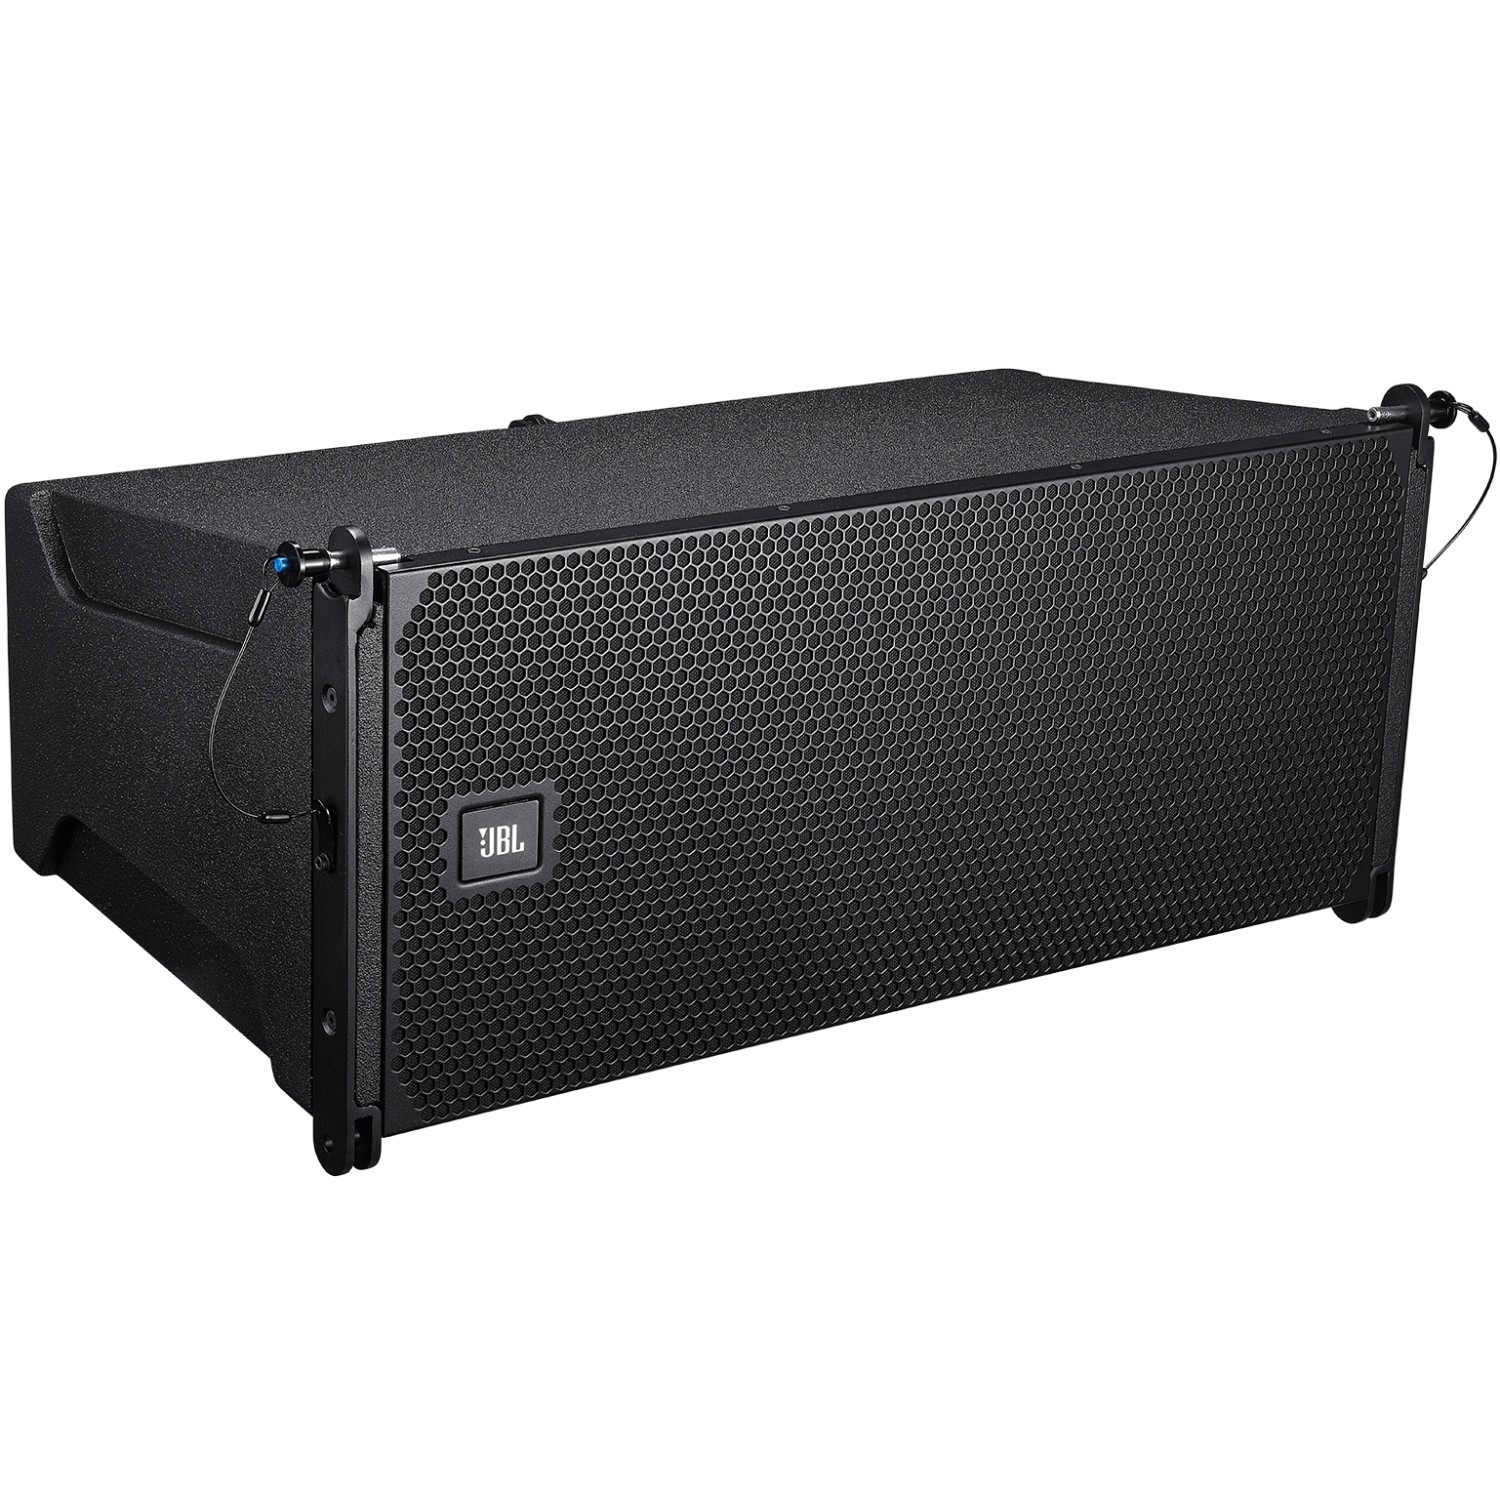 Loa Line Array Jbl Brx308 La (Brx300 Series)